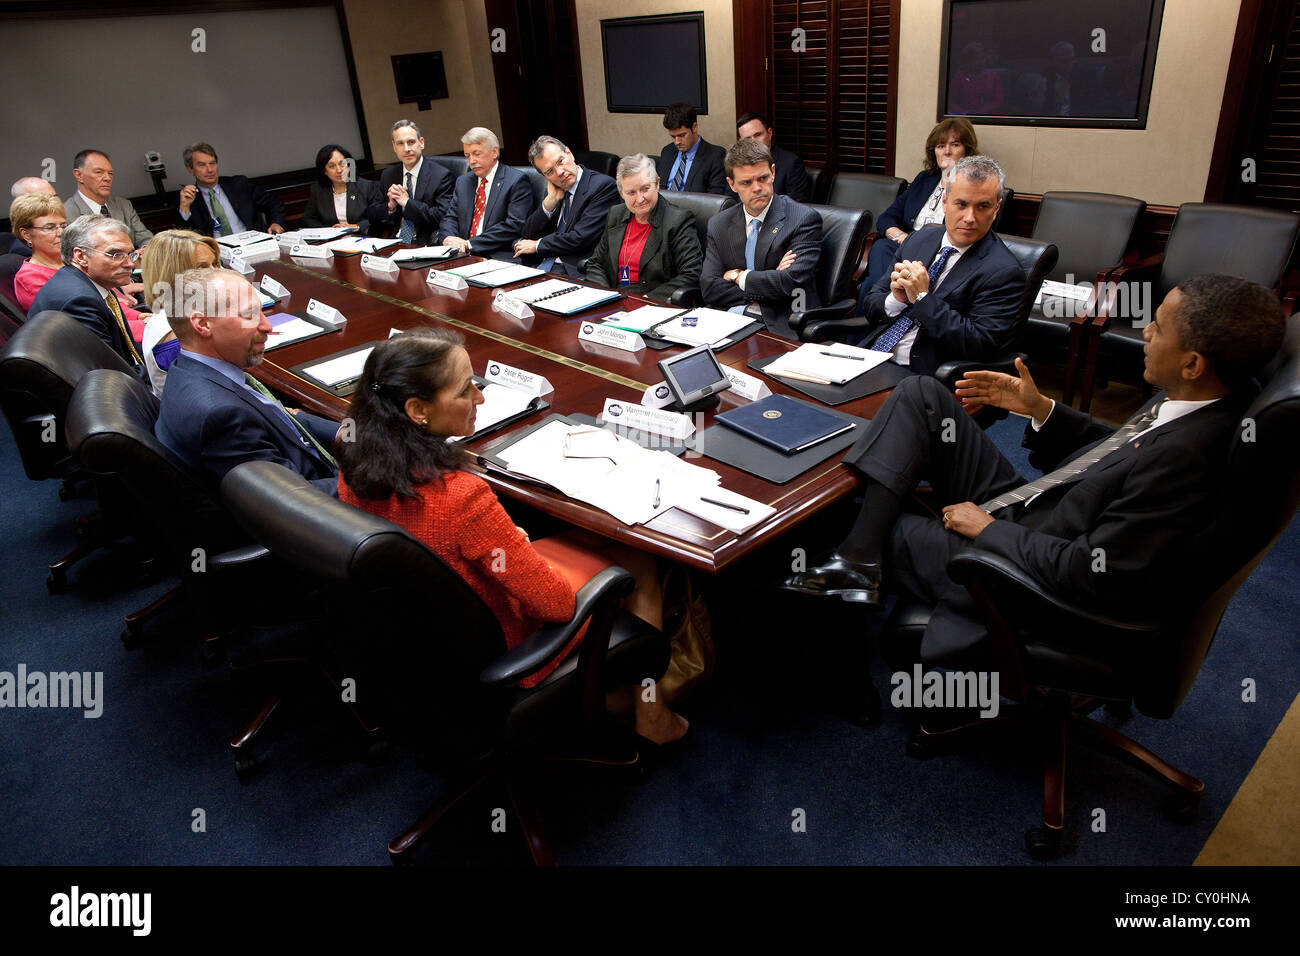 US President Barack Obama drops by a meeting with assistant secretaries June 6, 2011 in the Situation Room of the - Stock Image